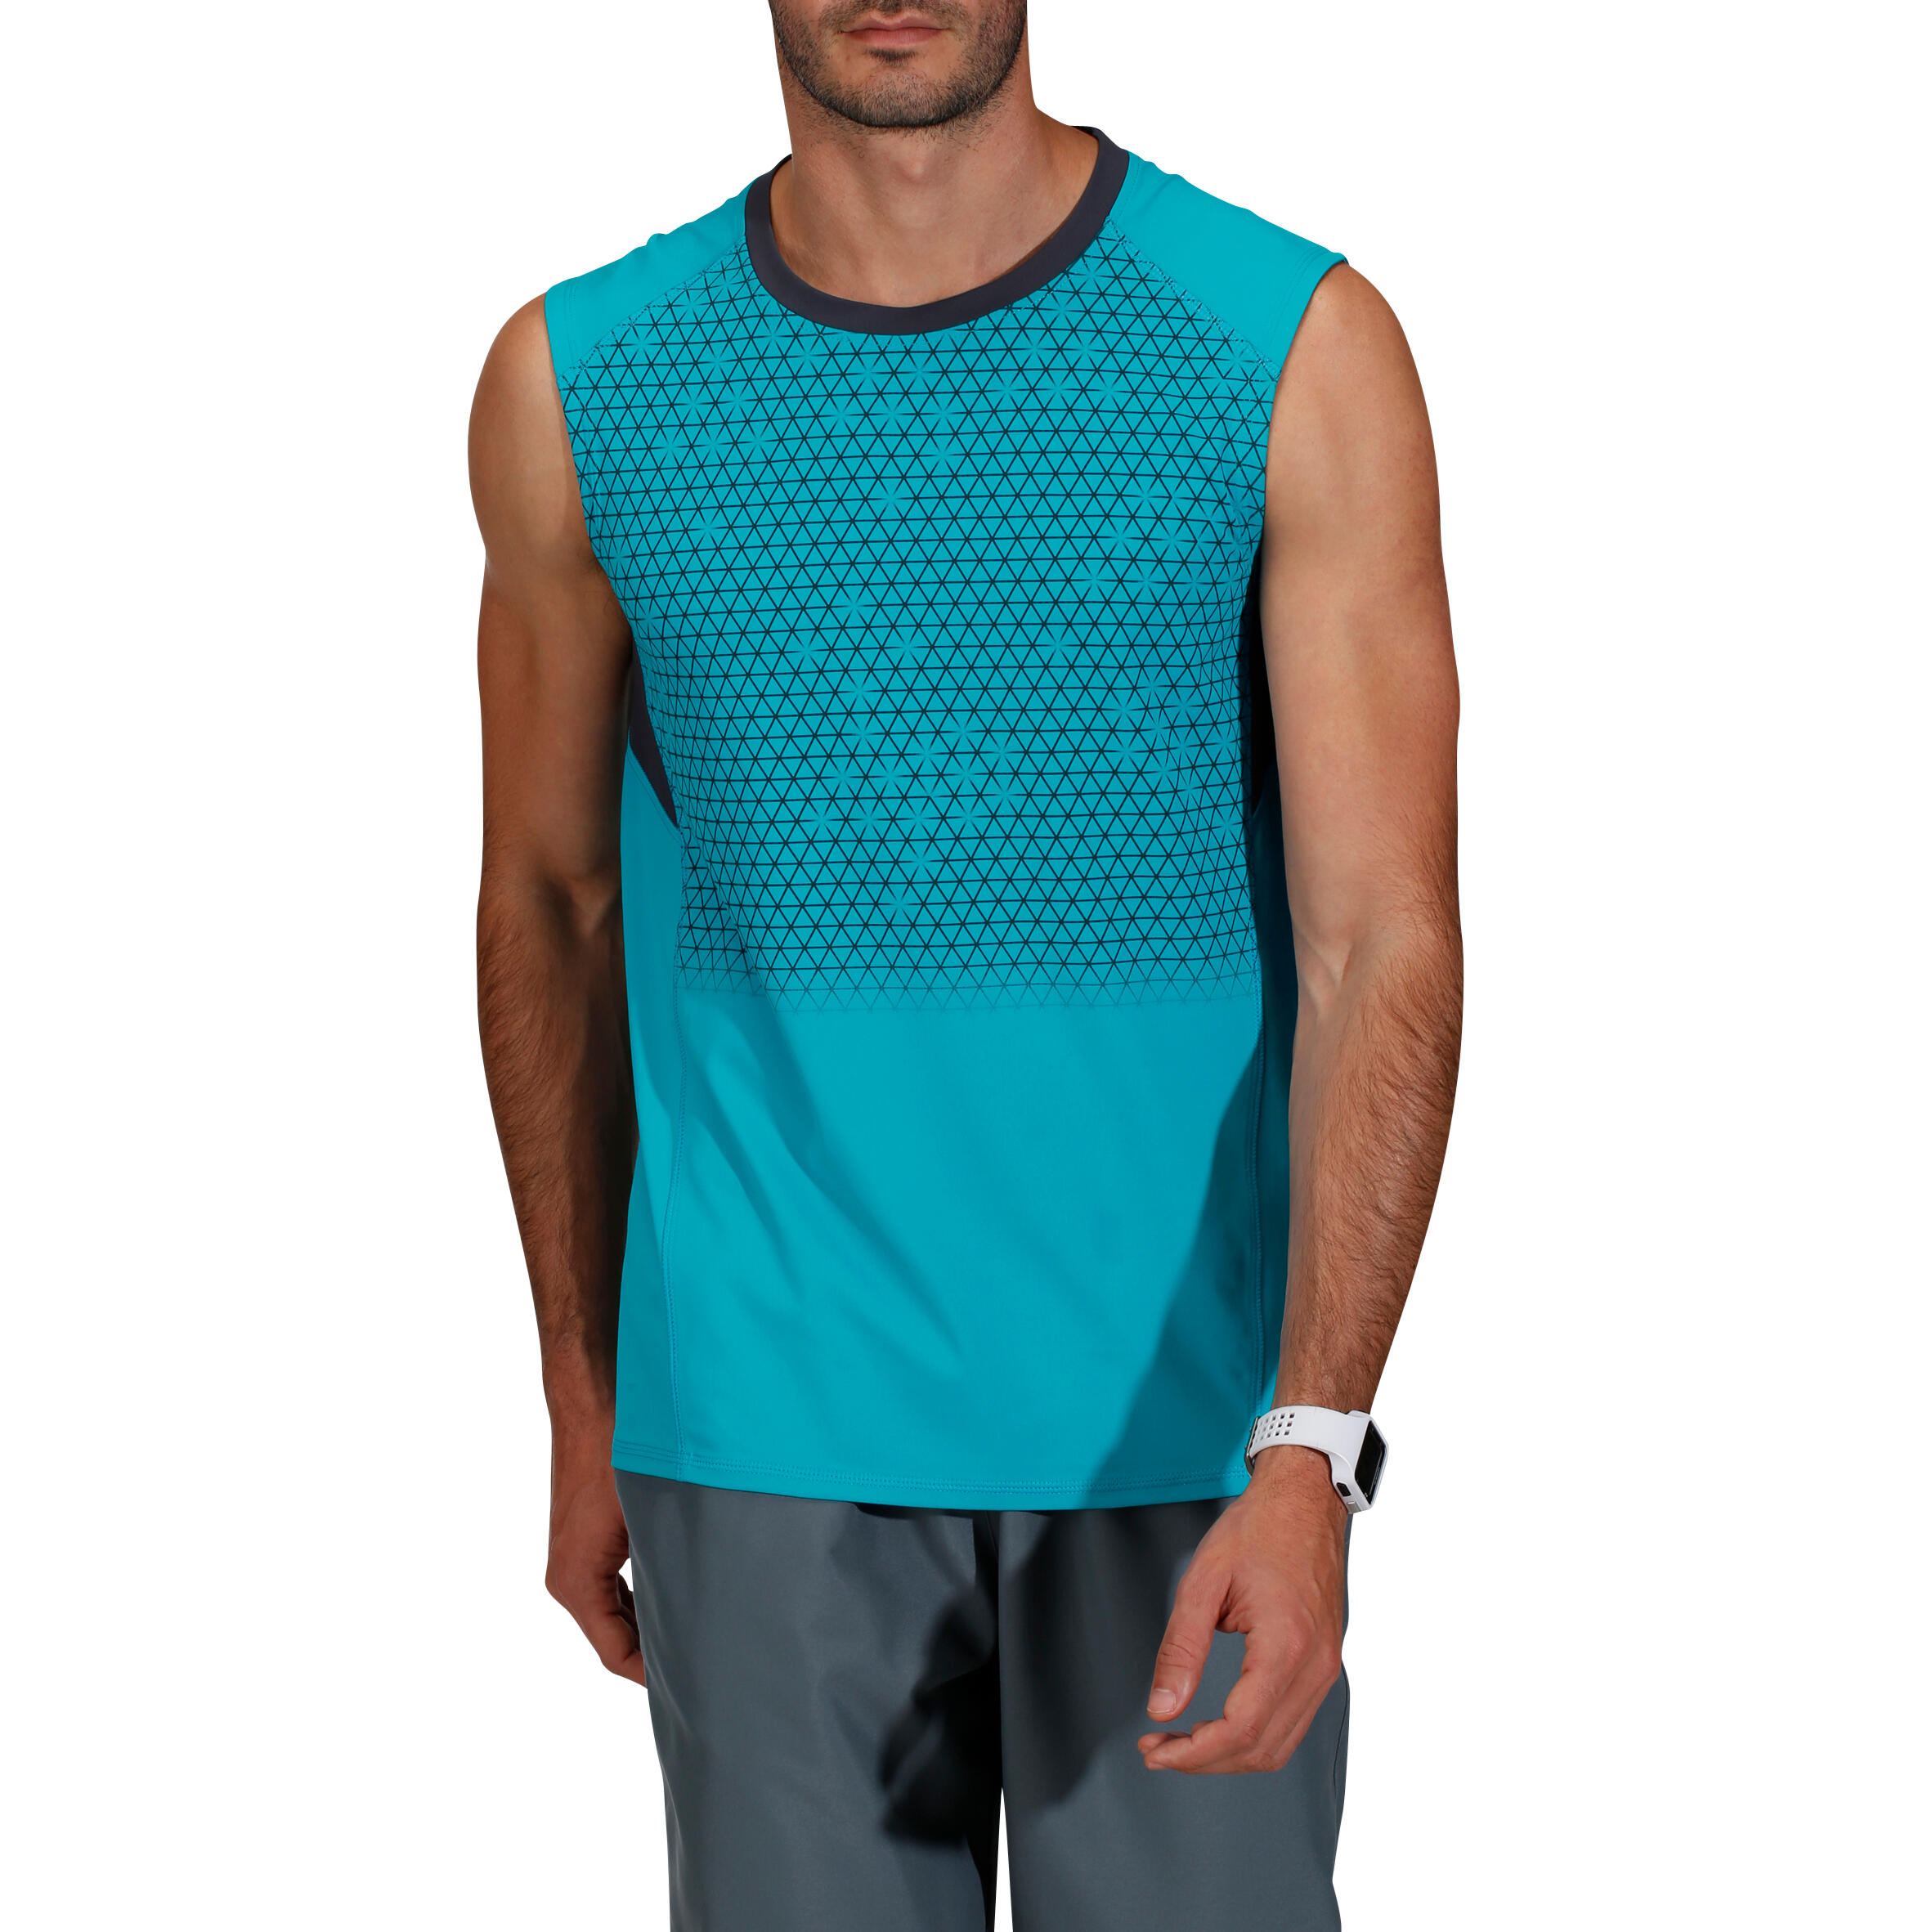 Energy 2nd P Fitness Print Tank Top - Blue